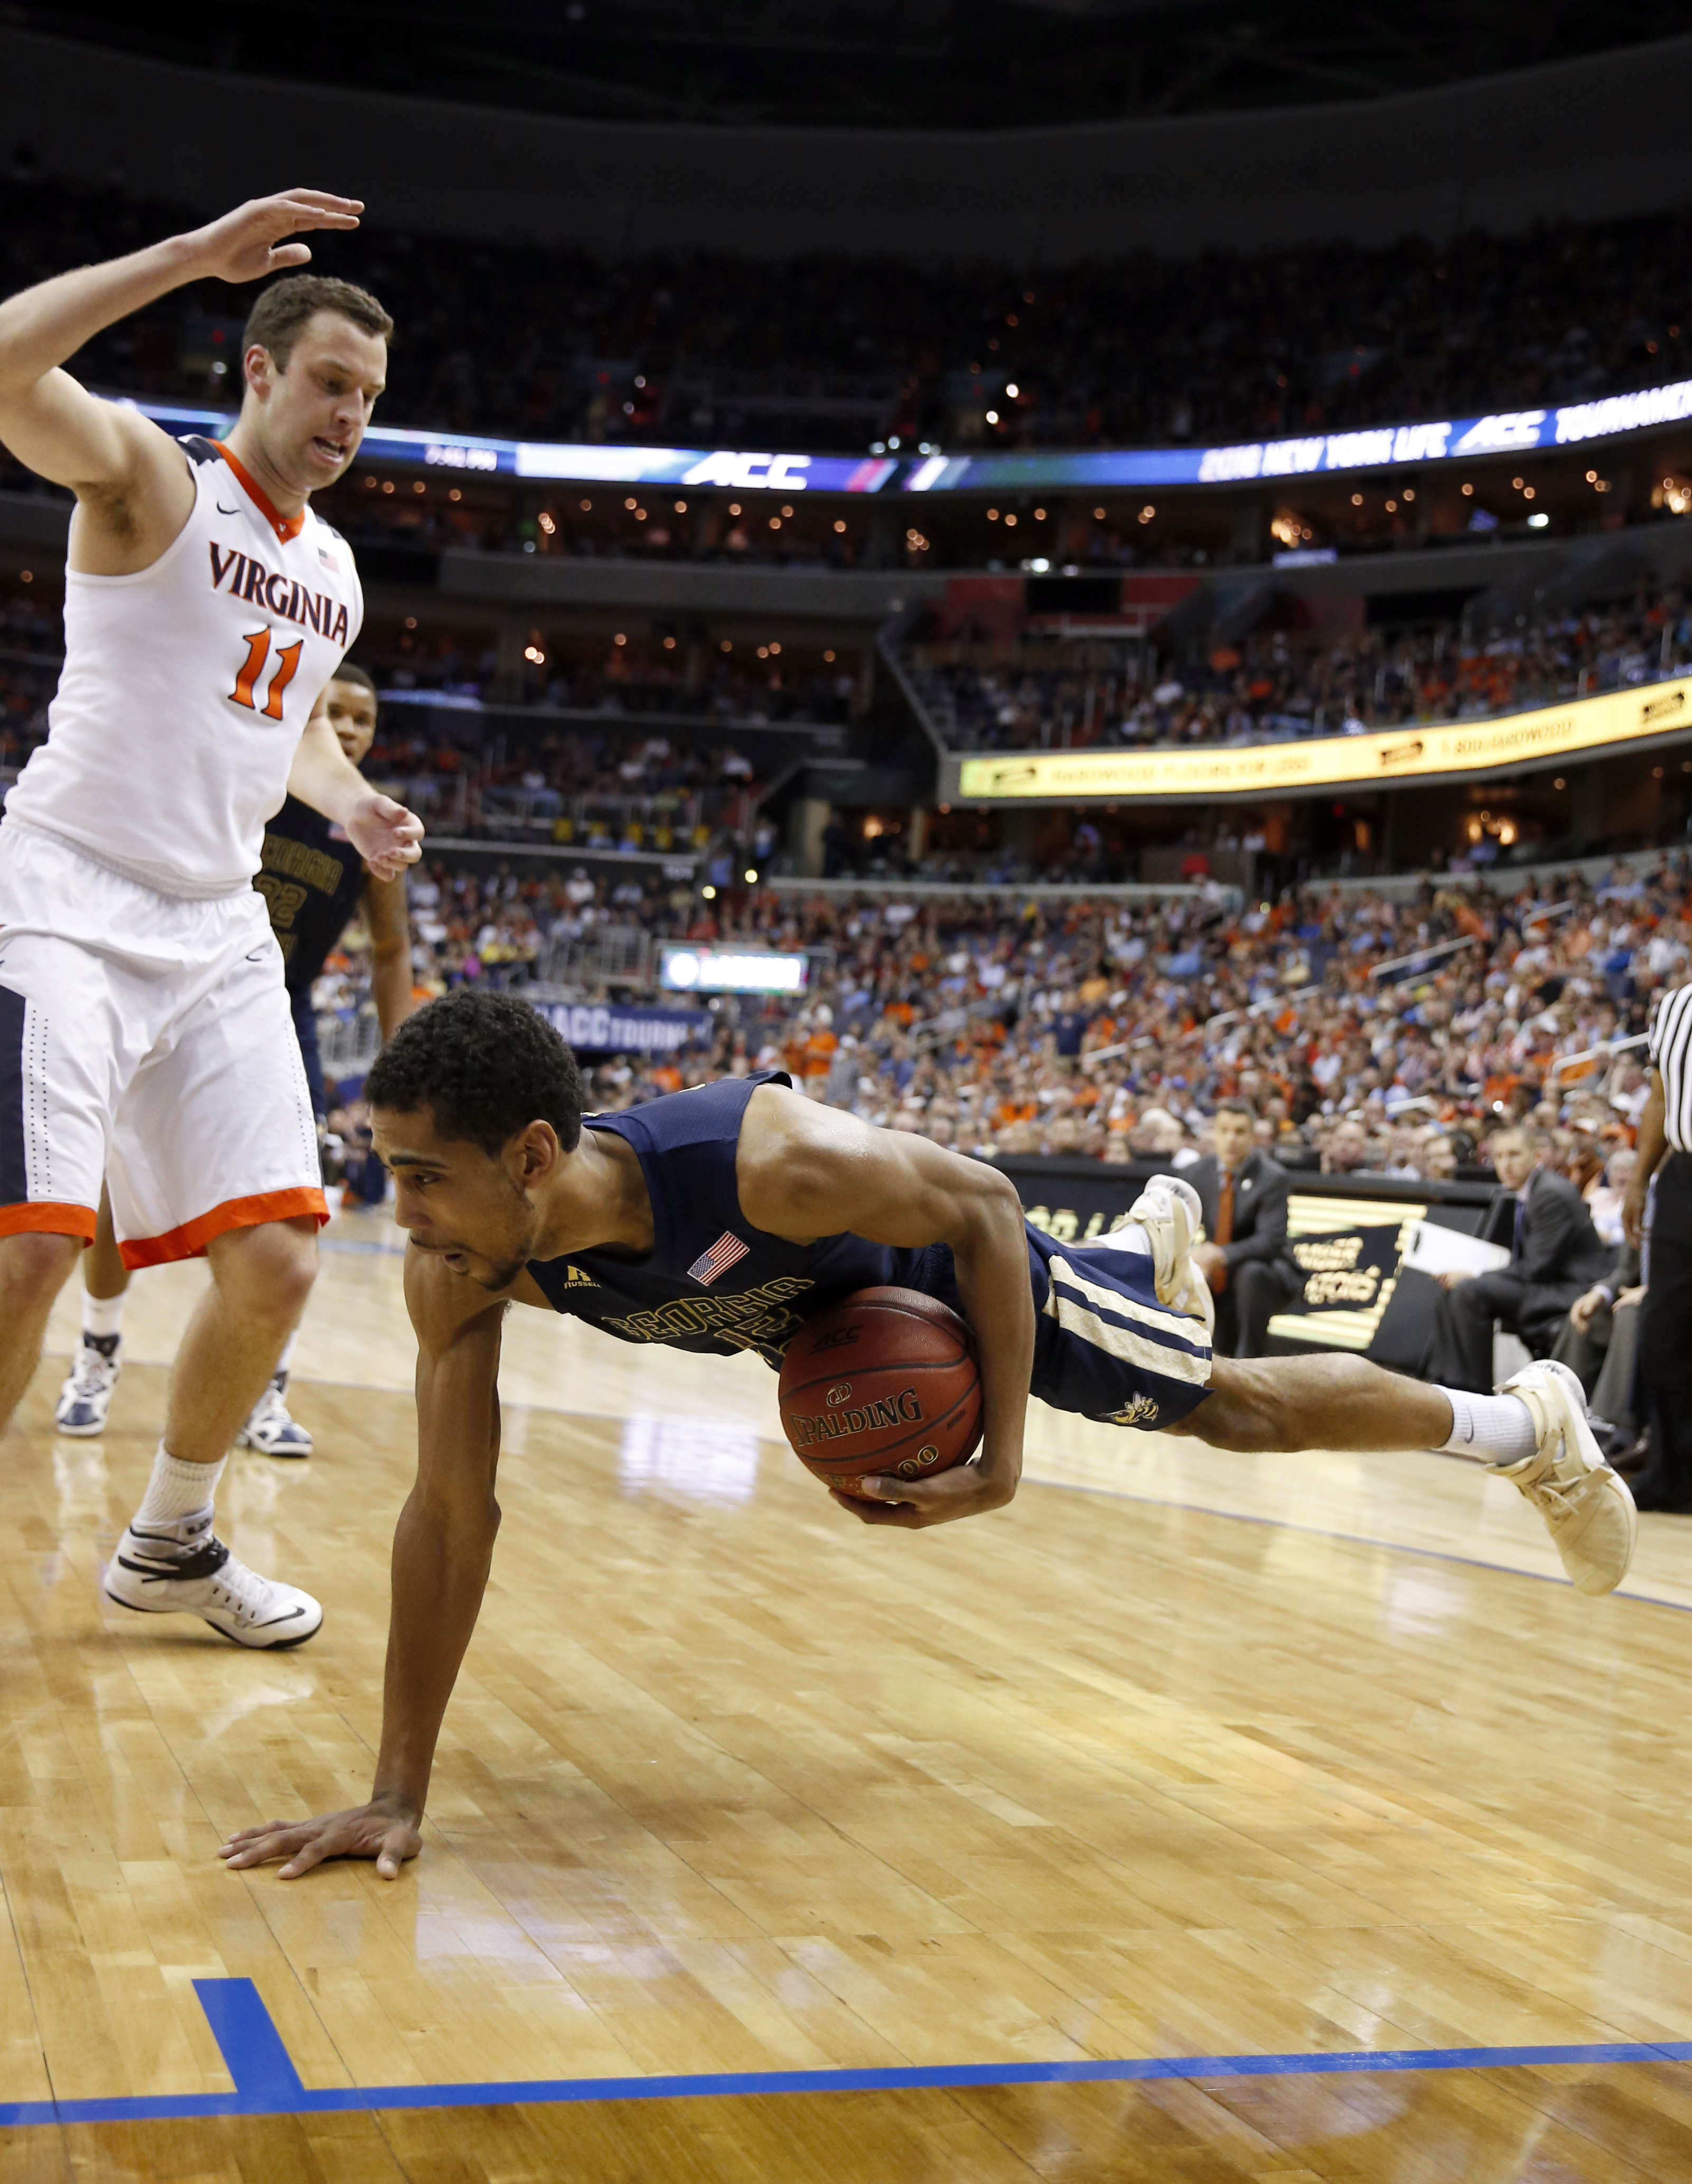 Georgia Tech forward Quinton Stephens (12) puts his hand out as he slips and falls in front of Virginia forward Evan Nolte (11) during the first half of an NCAA college basketball game in the Atlantic Coast Conference men's tournament, Thursday, March 10,